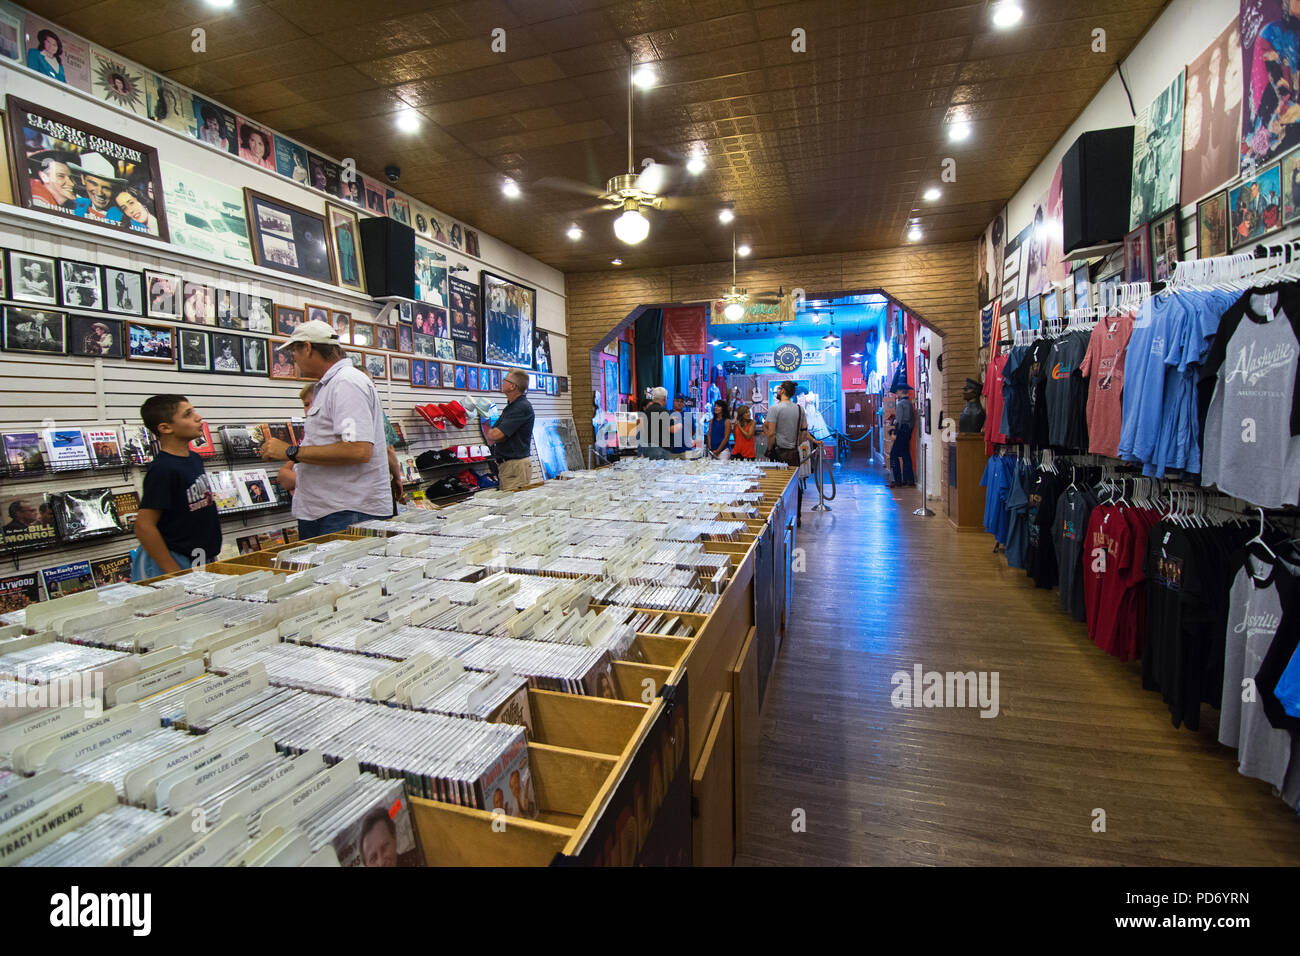 The interior of the famous Ernest Tubb Record Shop in Nashville, Tennessee, USA - Stock Image